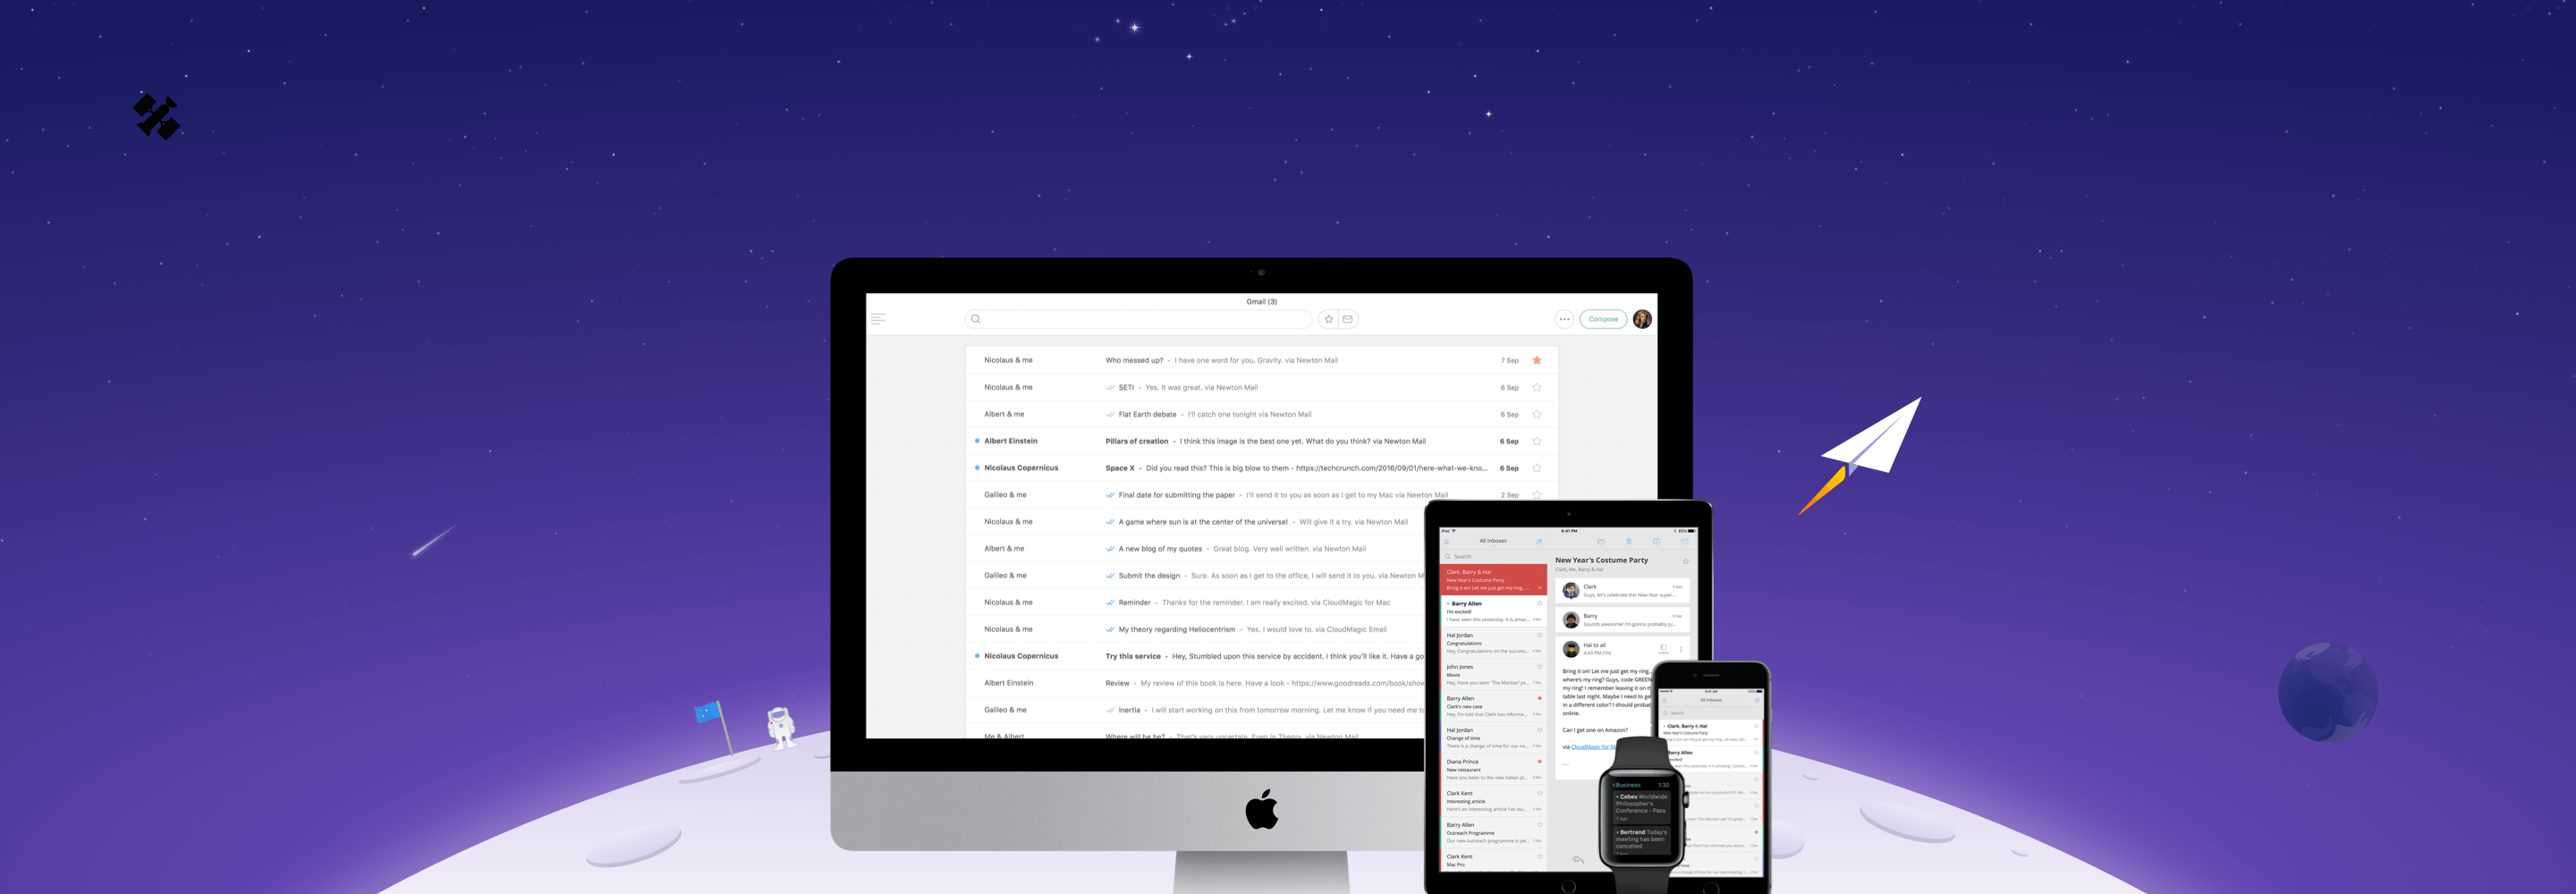 Newton voor iPhone, iPad, Mac en Apple Watch